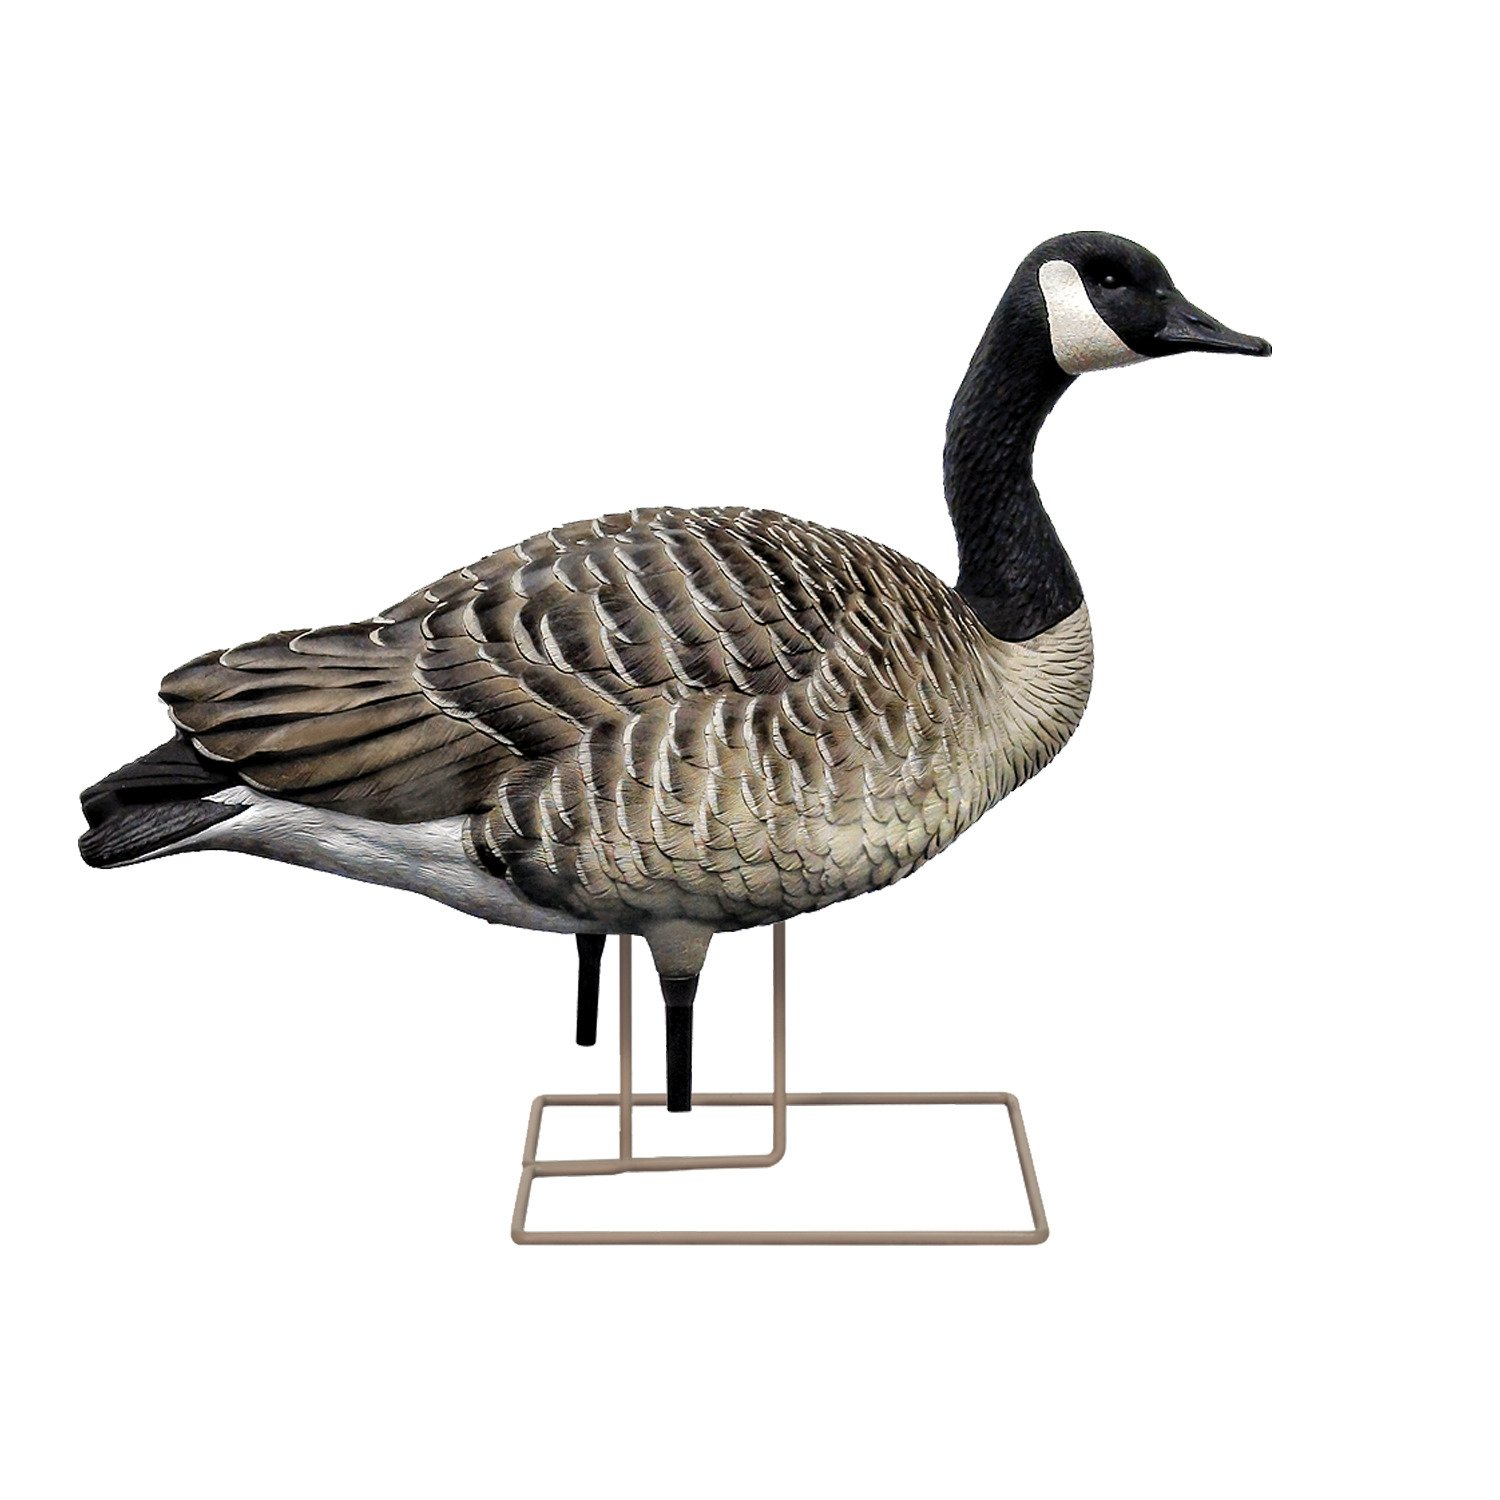 Avian-X AXP Painted Honkers Fusion Goose Decoys 6-Pack - view number 1